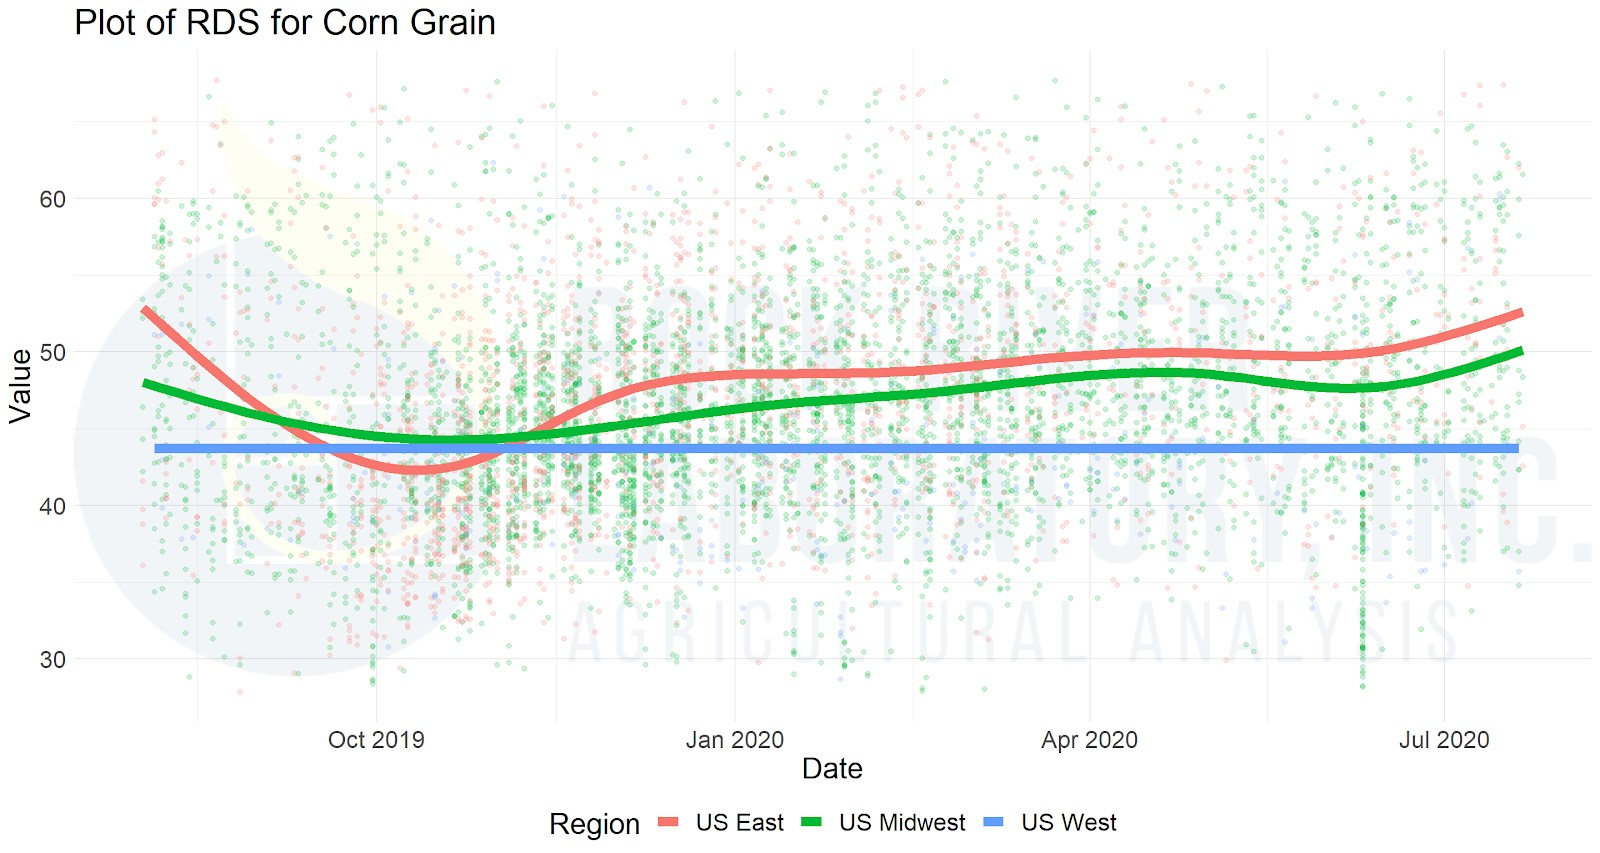 Figure 2: Corn grain rumen digestible starch load (RDS = 7-hour starch digestibility x starch content; percent of DM) for samples submitted to Rock River Laboratory in the US since Aug 1, 2019.